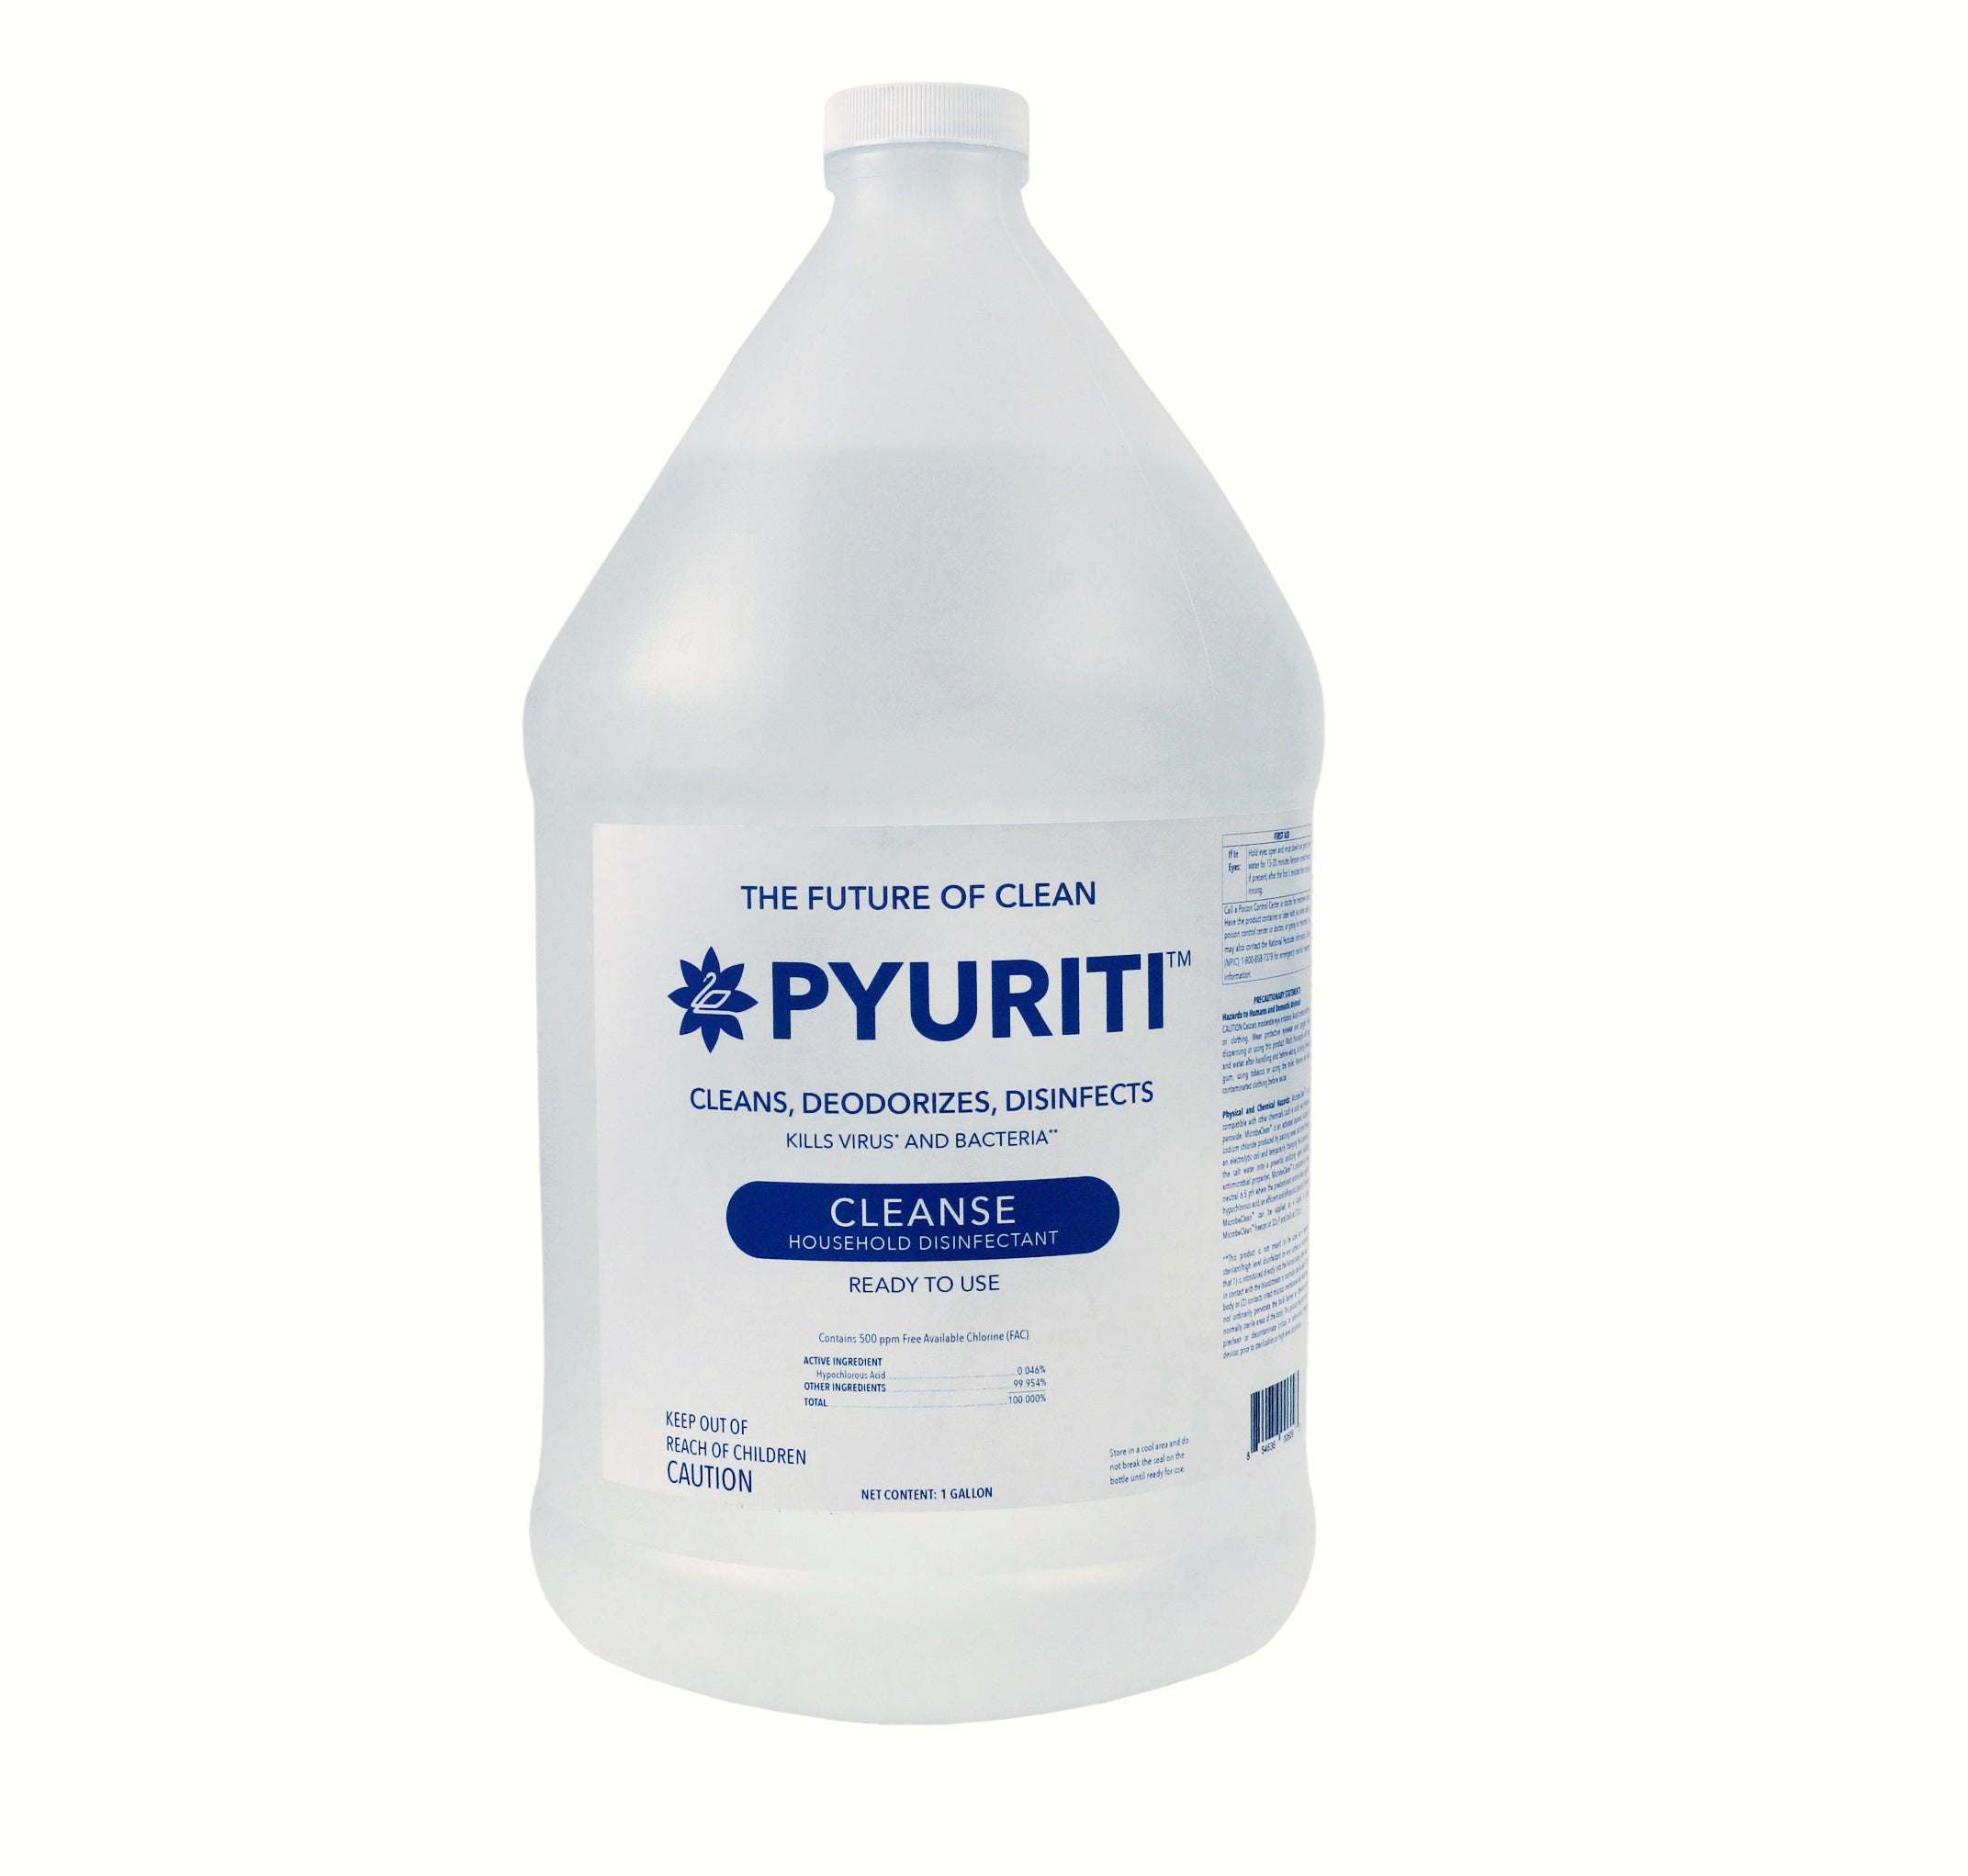 Pyuriti Cleanse All Purpose Disinfectant